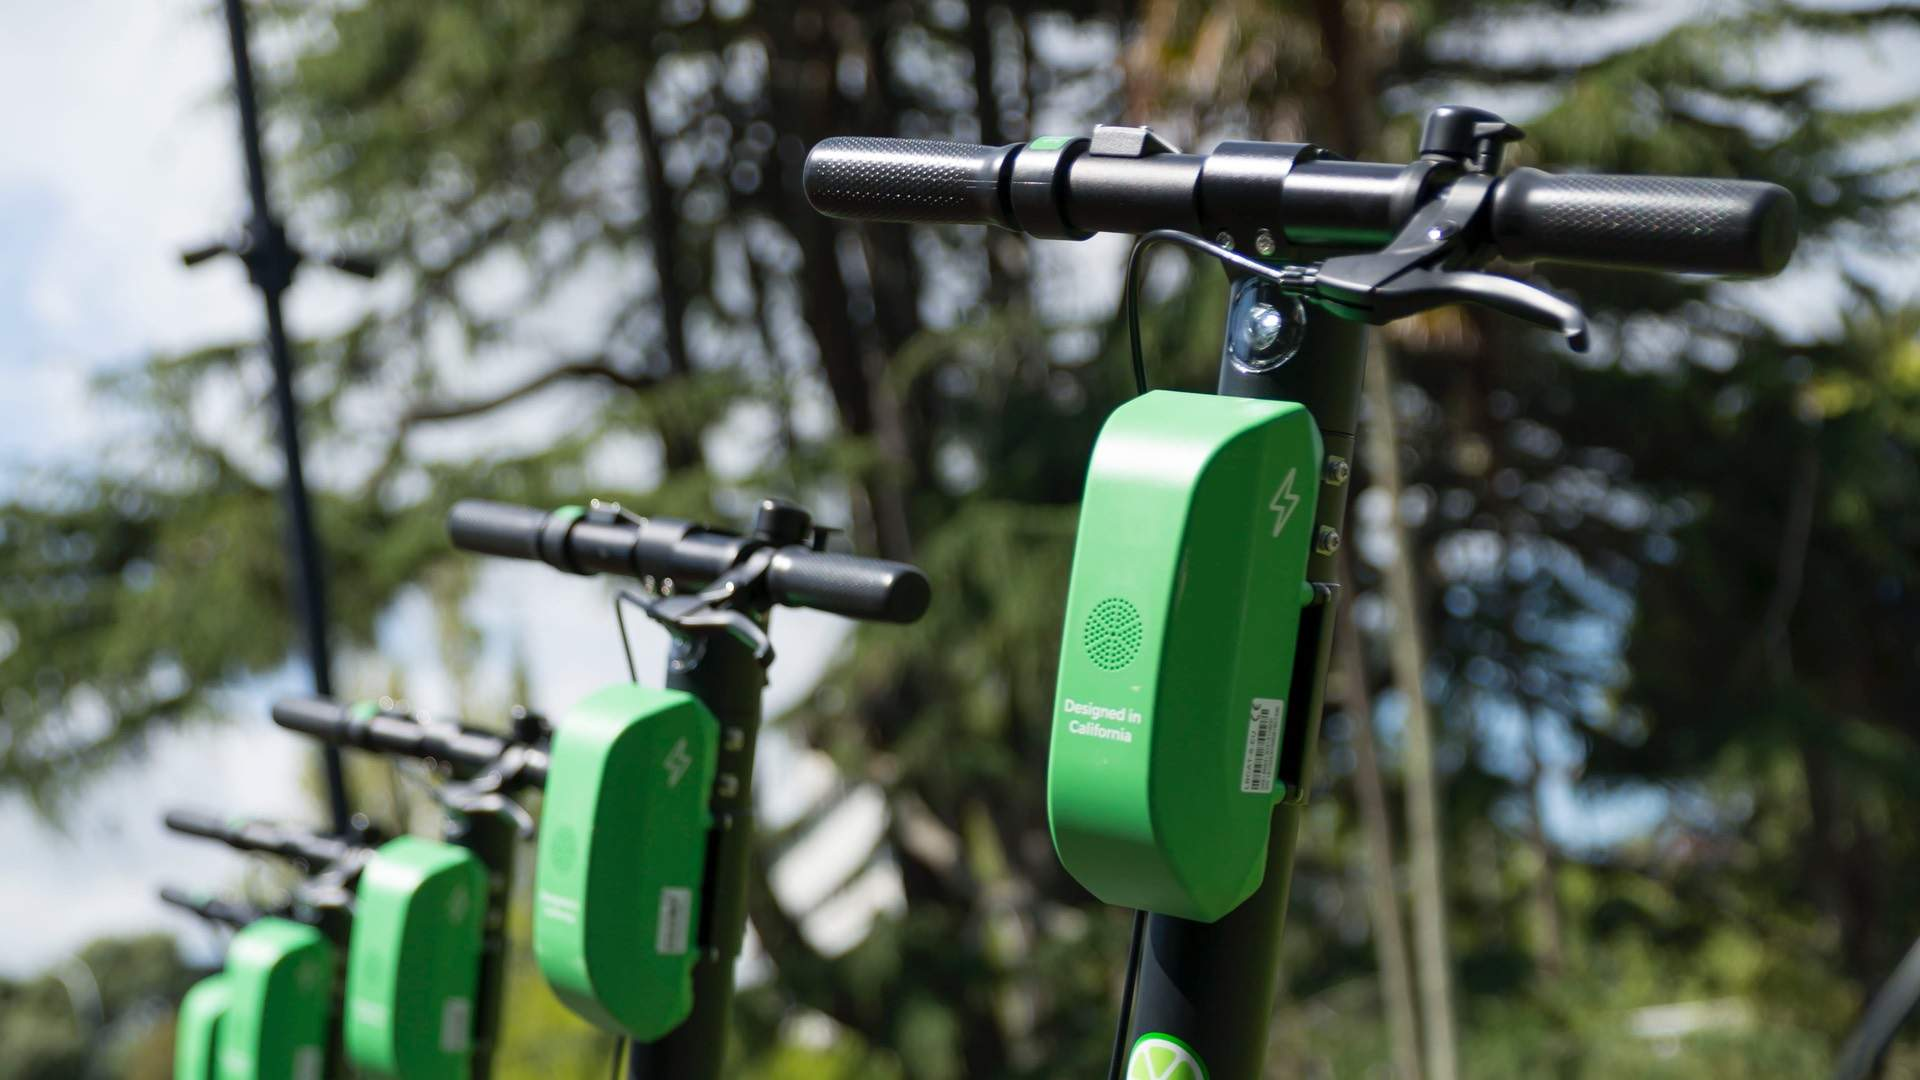 Lime's Dockless Electric Scooter Service Has Launched in Brisbane